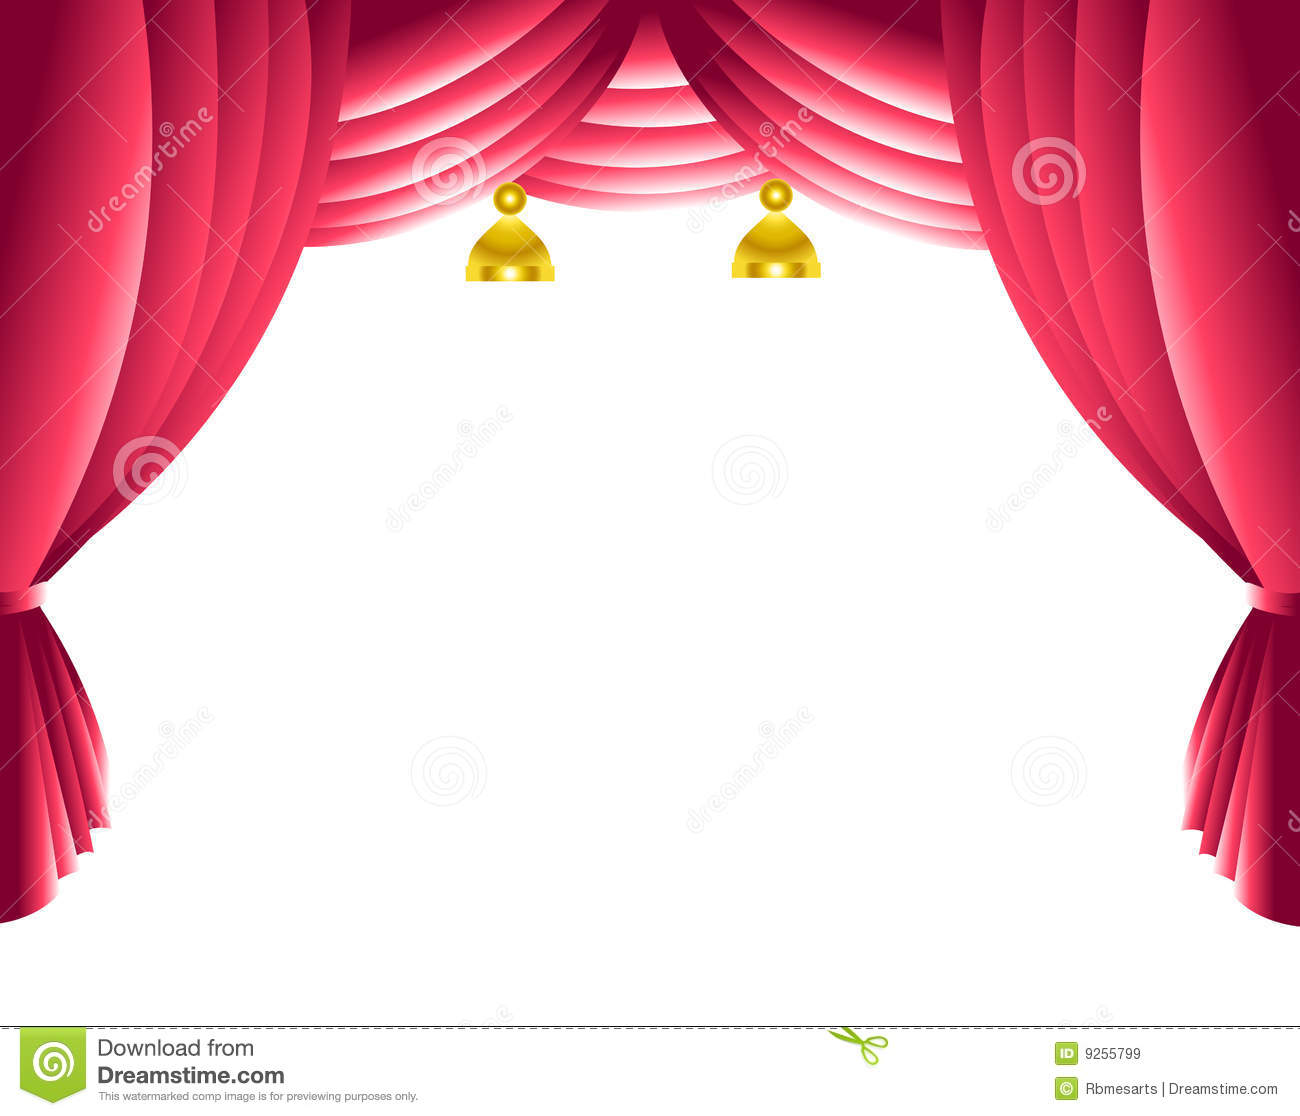 Blue stage curtains blue stage curtain vector free vector in - Stage Curtain Royalty Free Stock Images